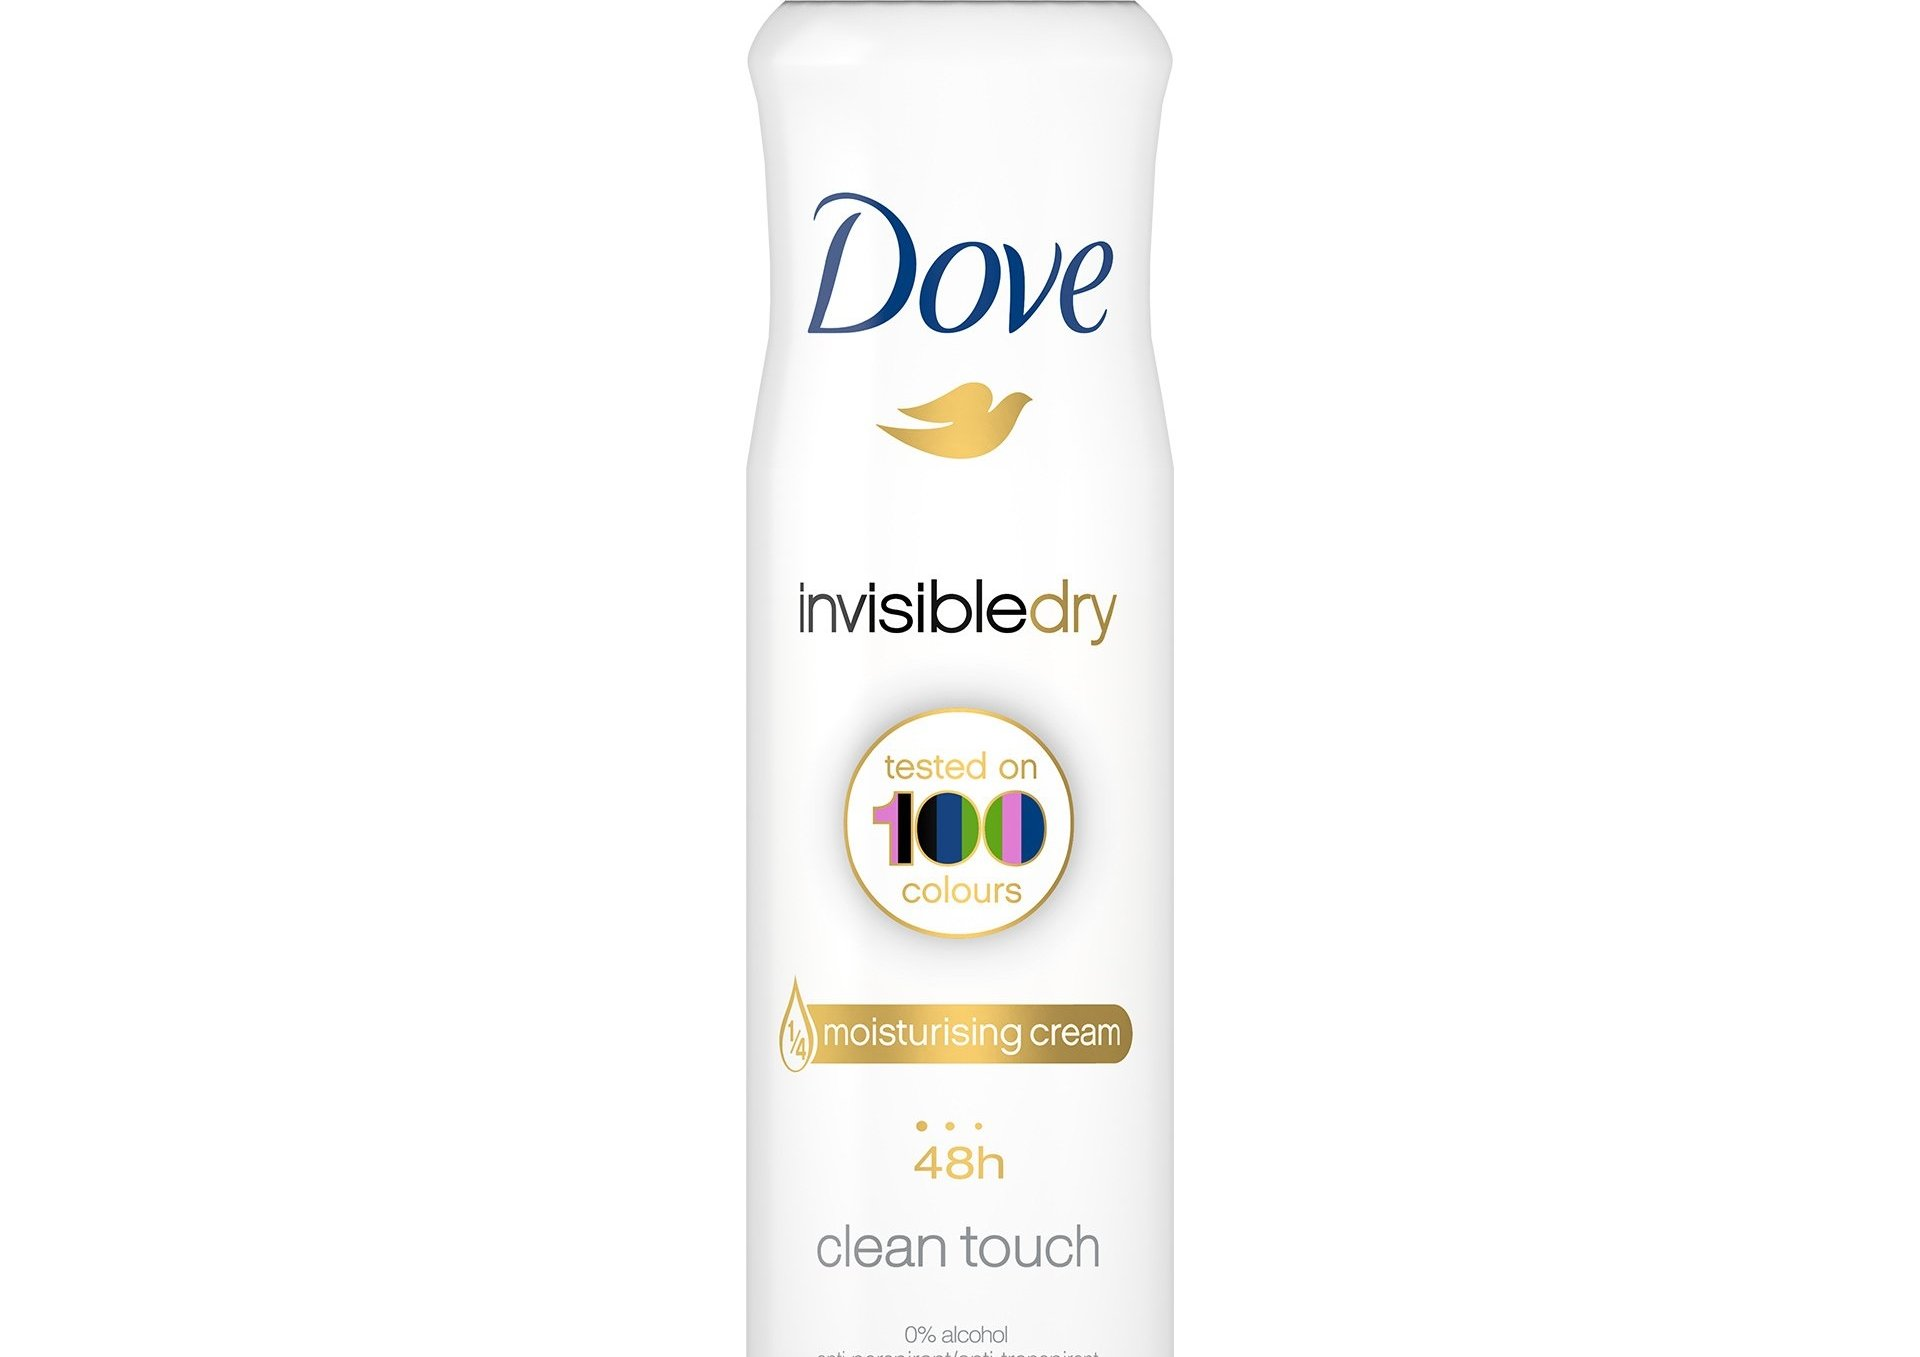 Dove Deo Spray Invisible Dry 48h Clean Touch Αποσμητικό 48ωρης Αντιιδρωτικής Προστασίας Χωρίς Λευκά Σημάδια στα Ρούχα 150ml